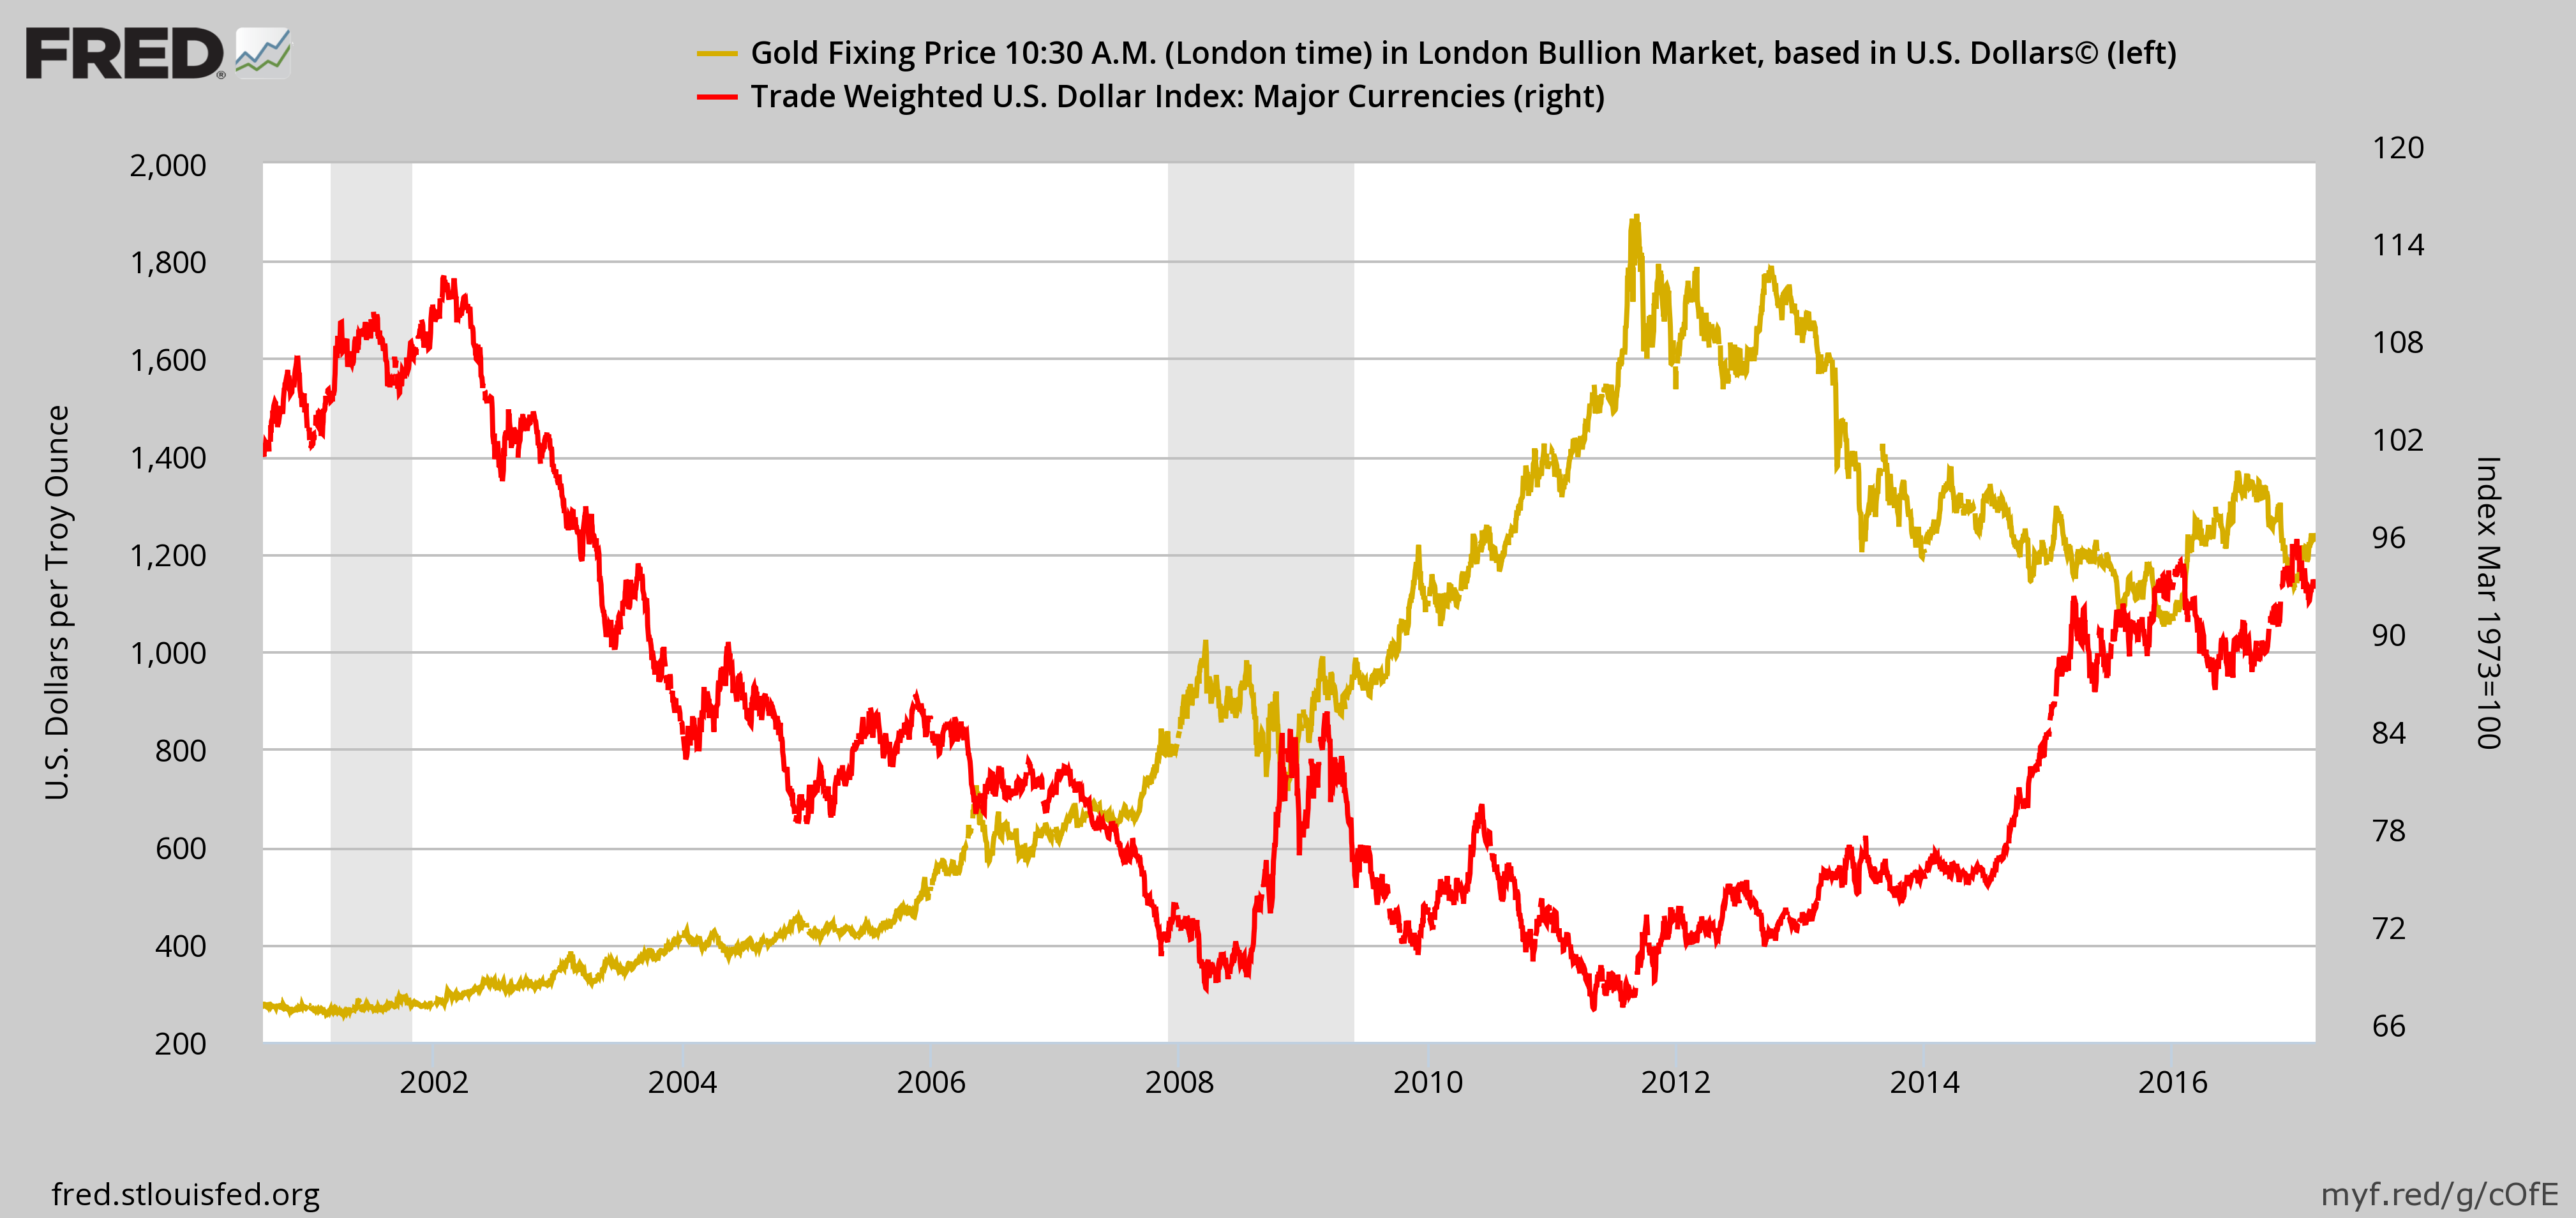 side makes price s article the rates these to gold likely charts origin and negative pressure will downside below markets correlation is down seeking experience on alpha dollar that